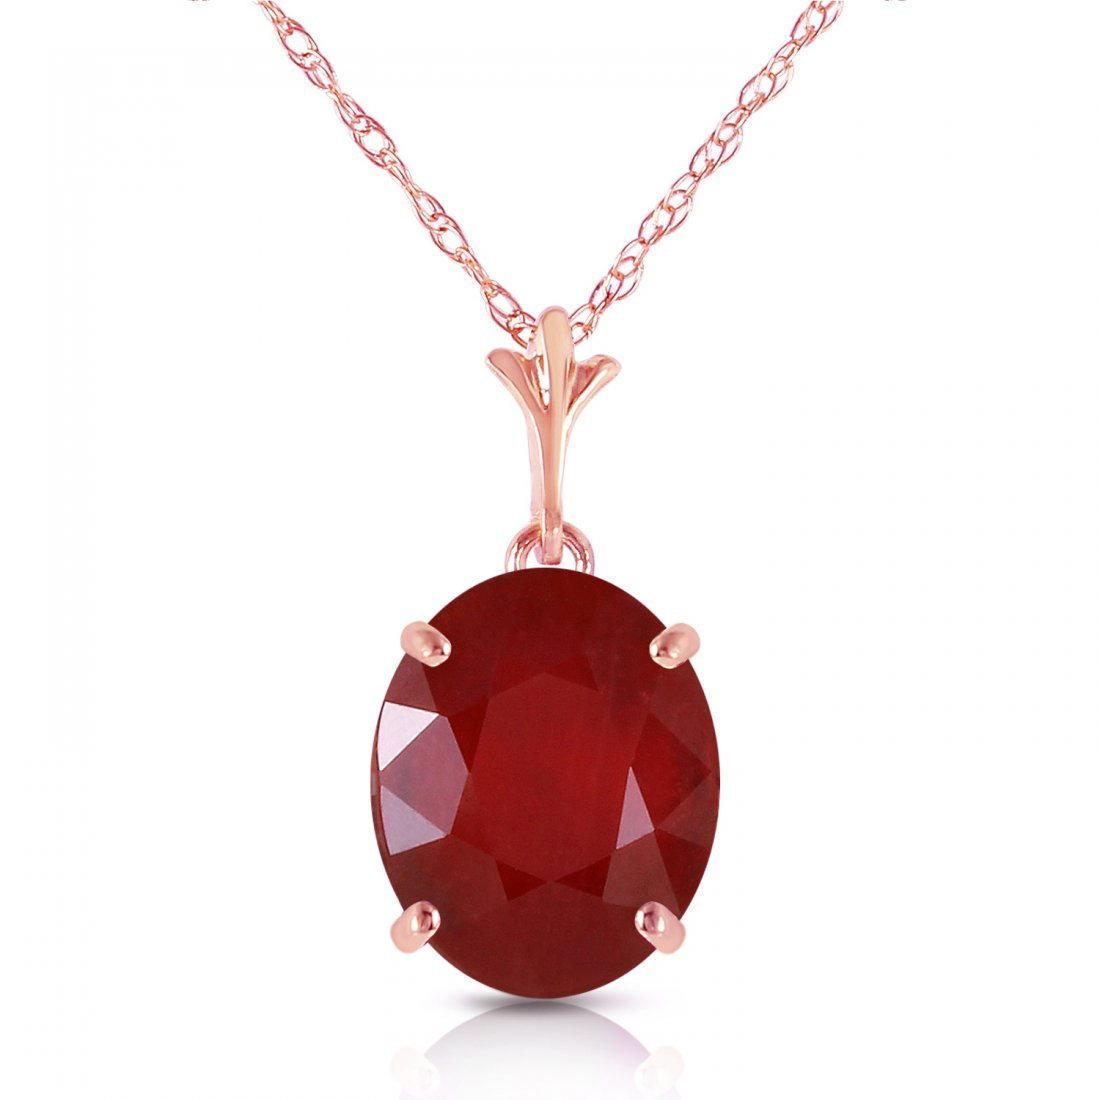 Genuine 3.5 ctw Ruby Necklace Jewelry 14KT Rose Gold -